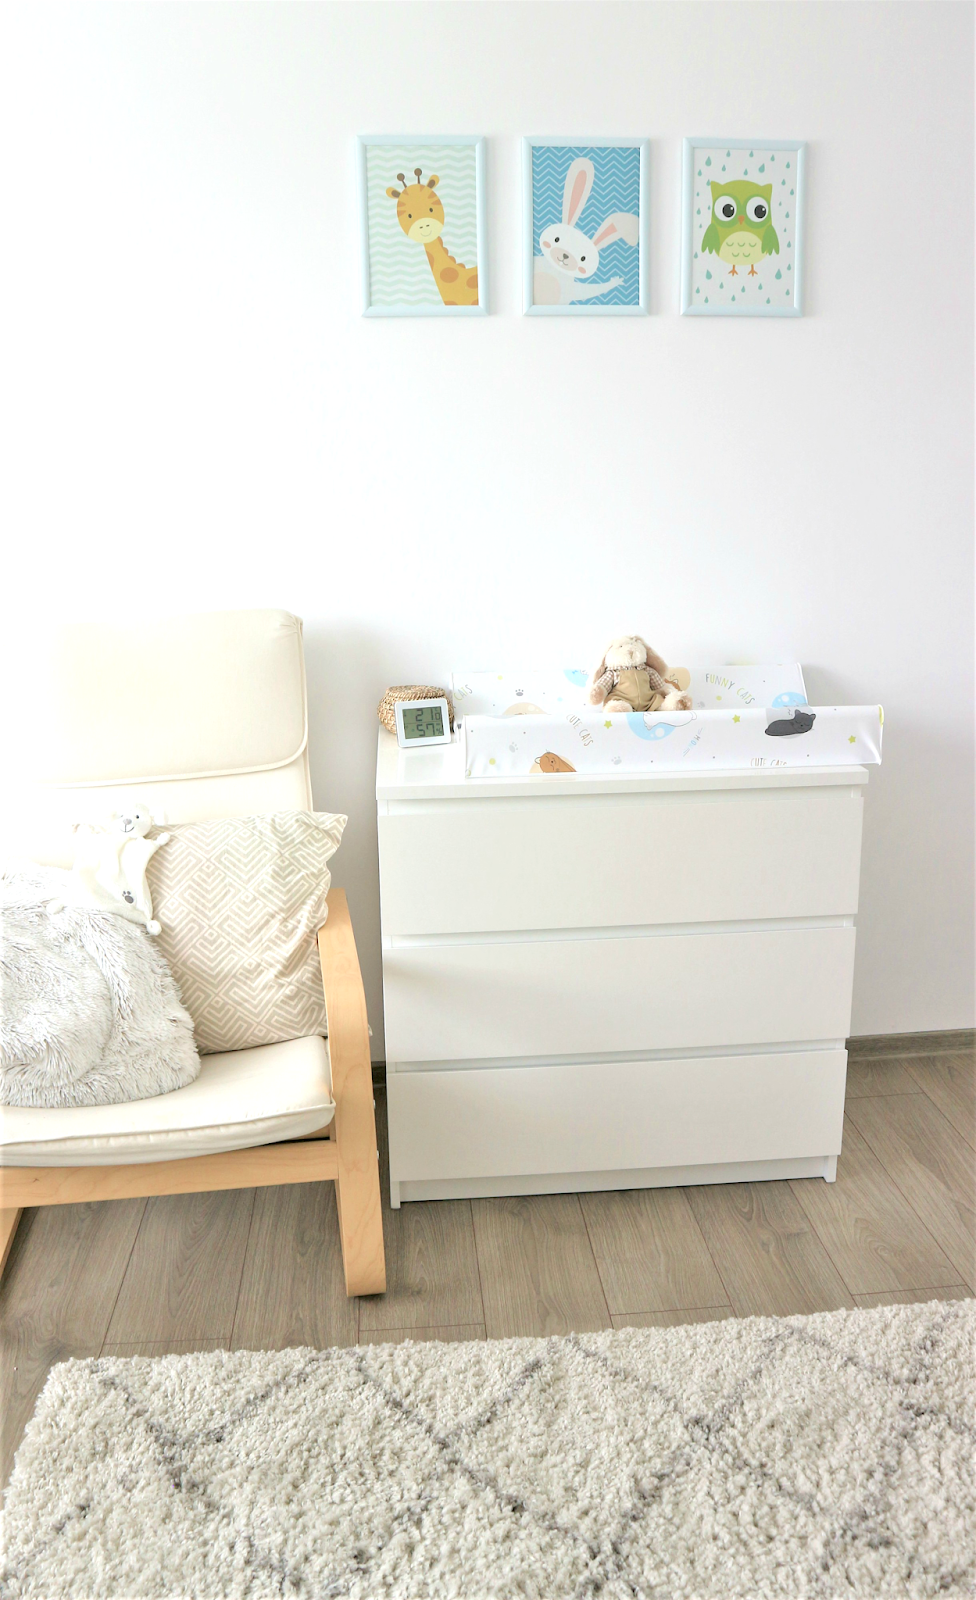 Ikea Malm dresser with changing table and minimalist nursery decor